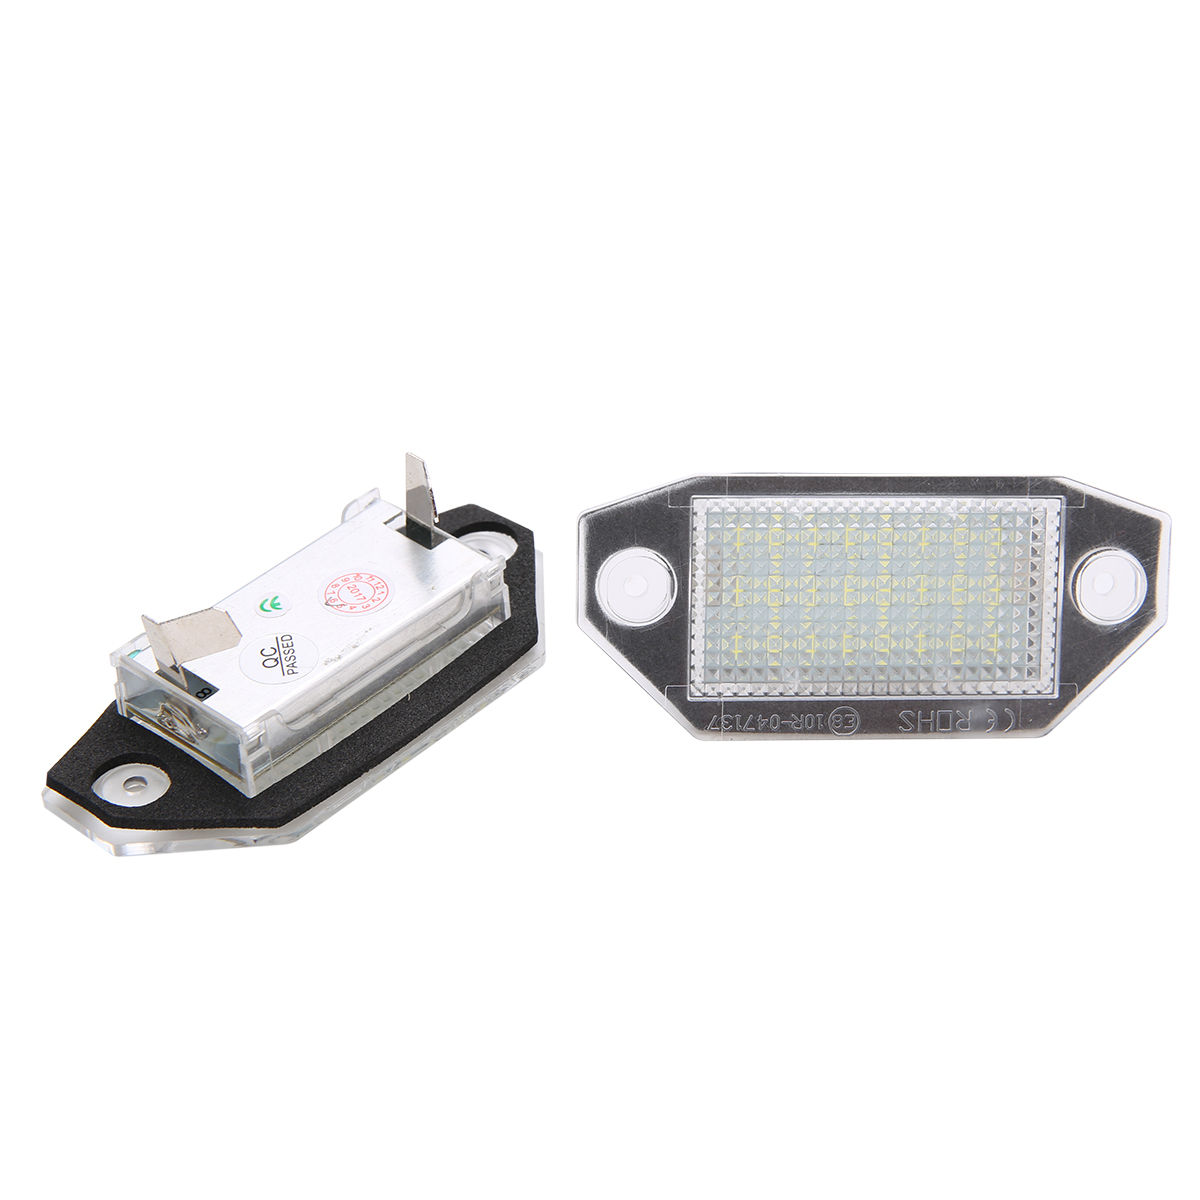 2pcs/set 12V 24LED White Number License Plate Light Built-in Canbus Controller Lamp Fit For Ford Mondeo MK3 2000-2007